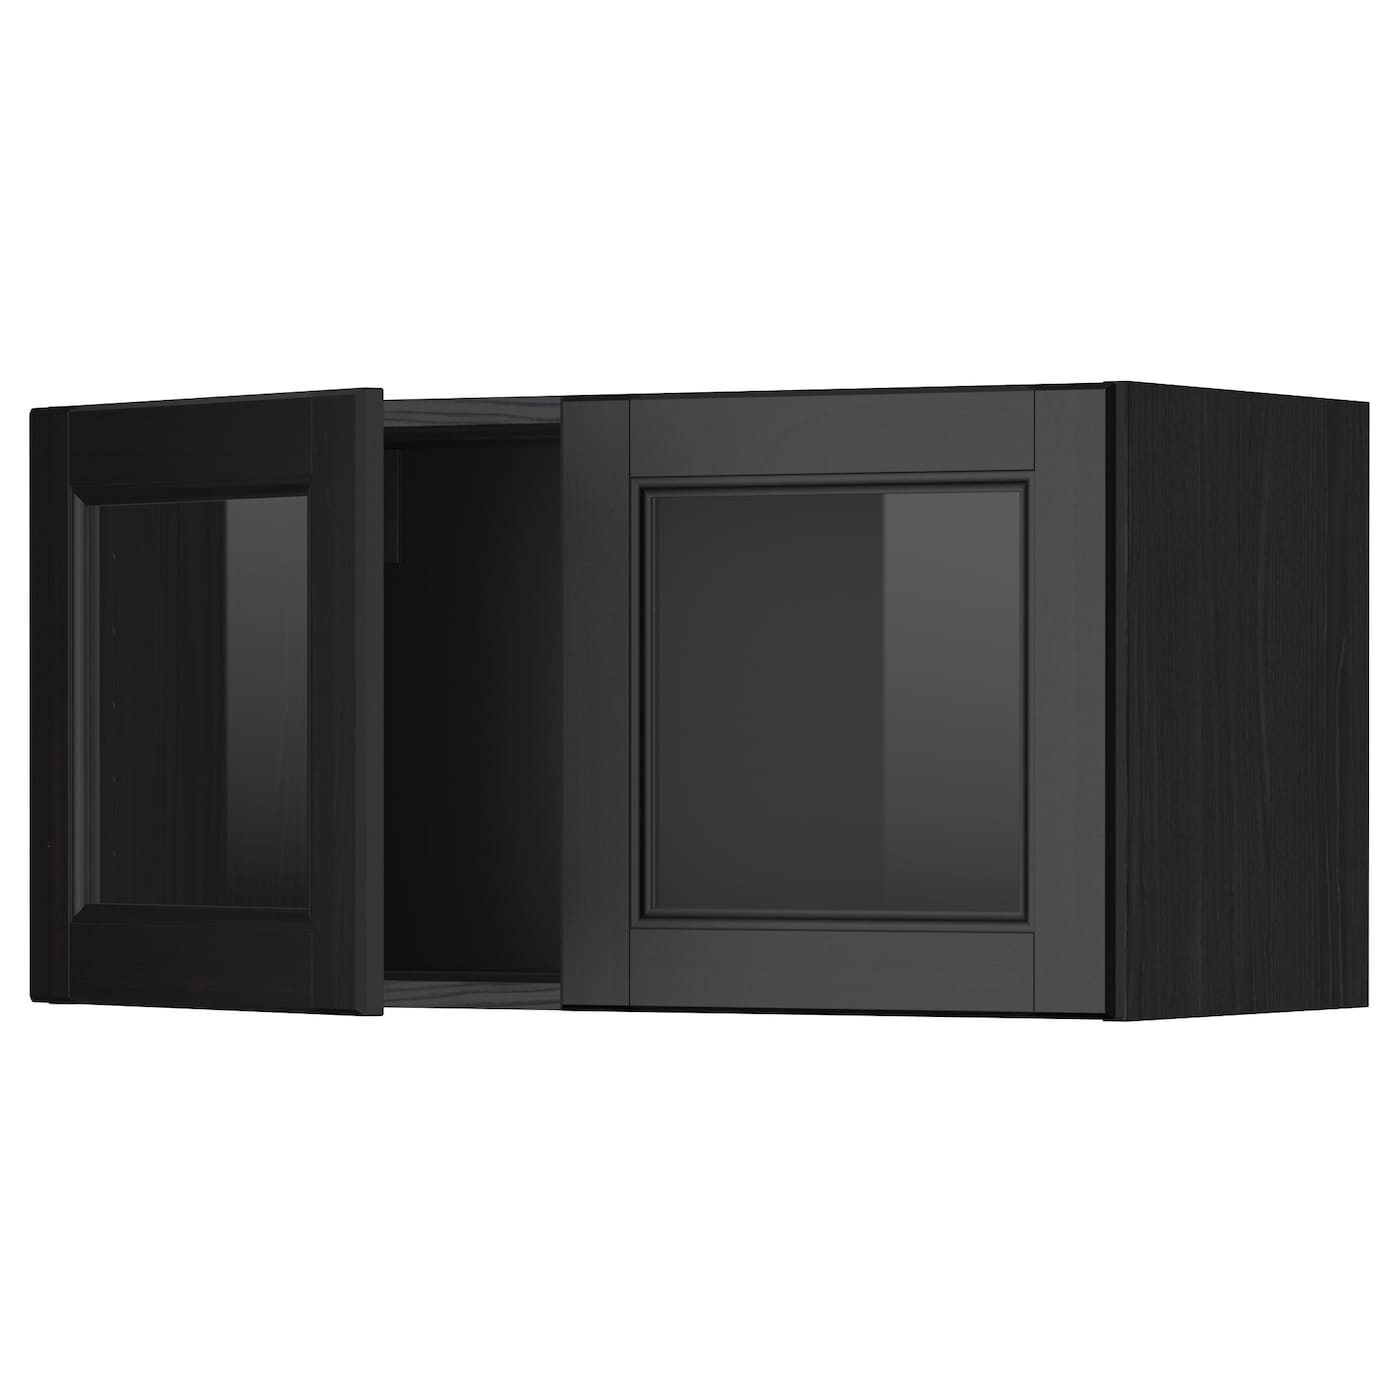 Metod wall cabinet with 2 glass doors black laxarby black for Black kitchen cabinet doors